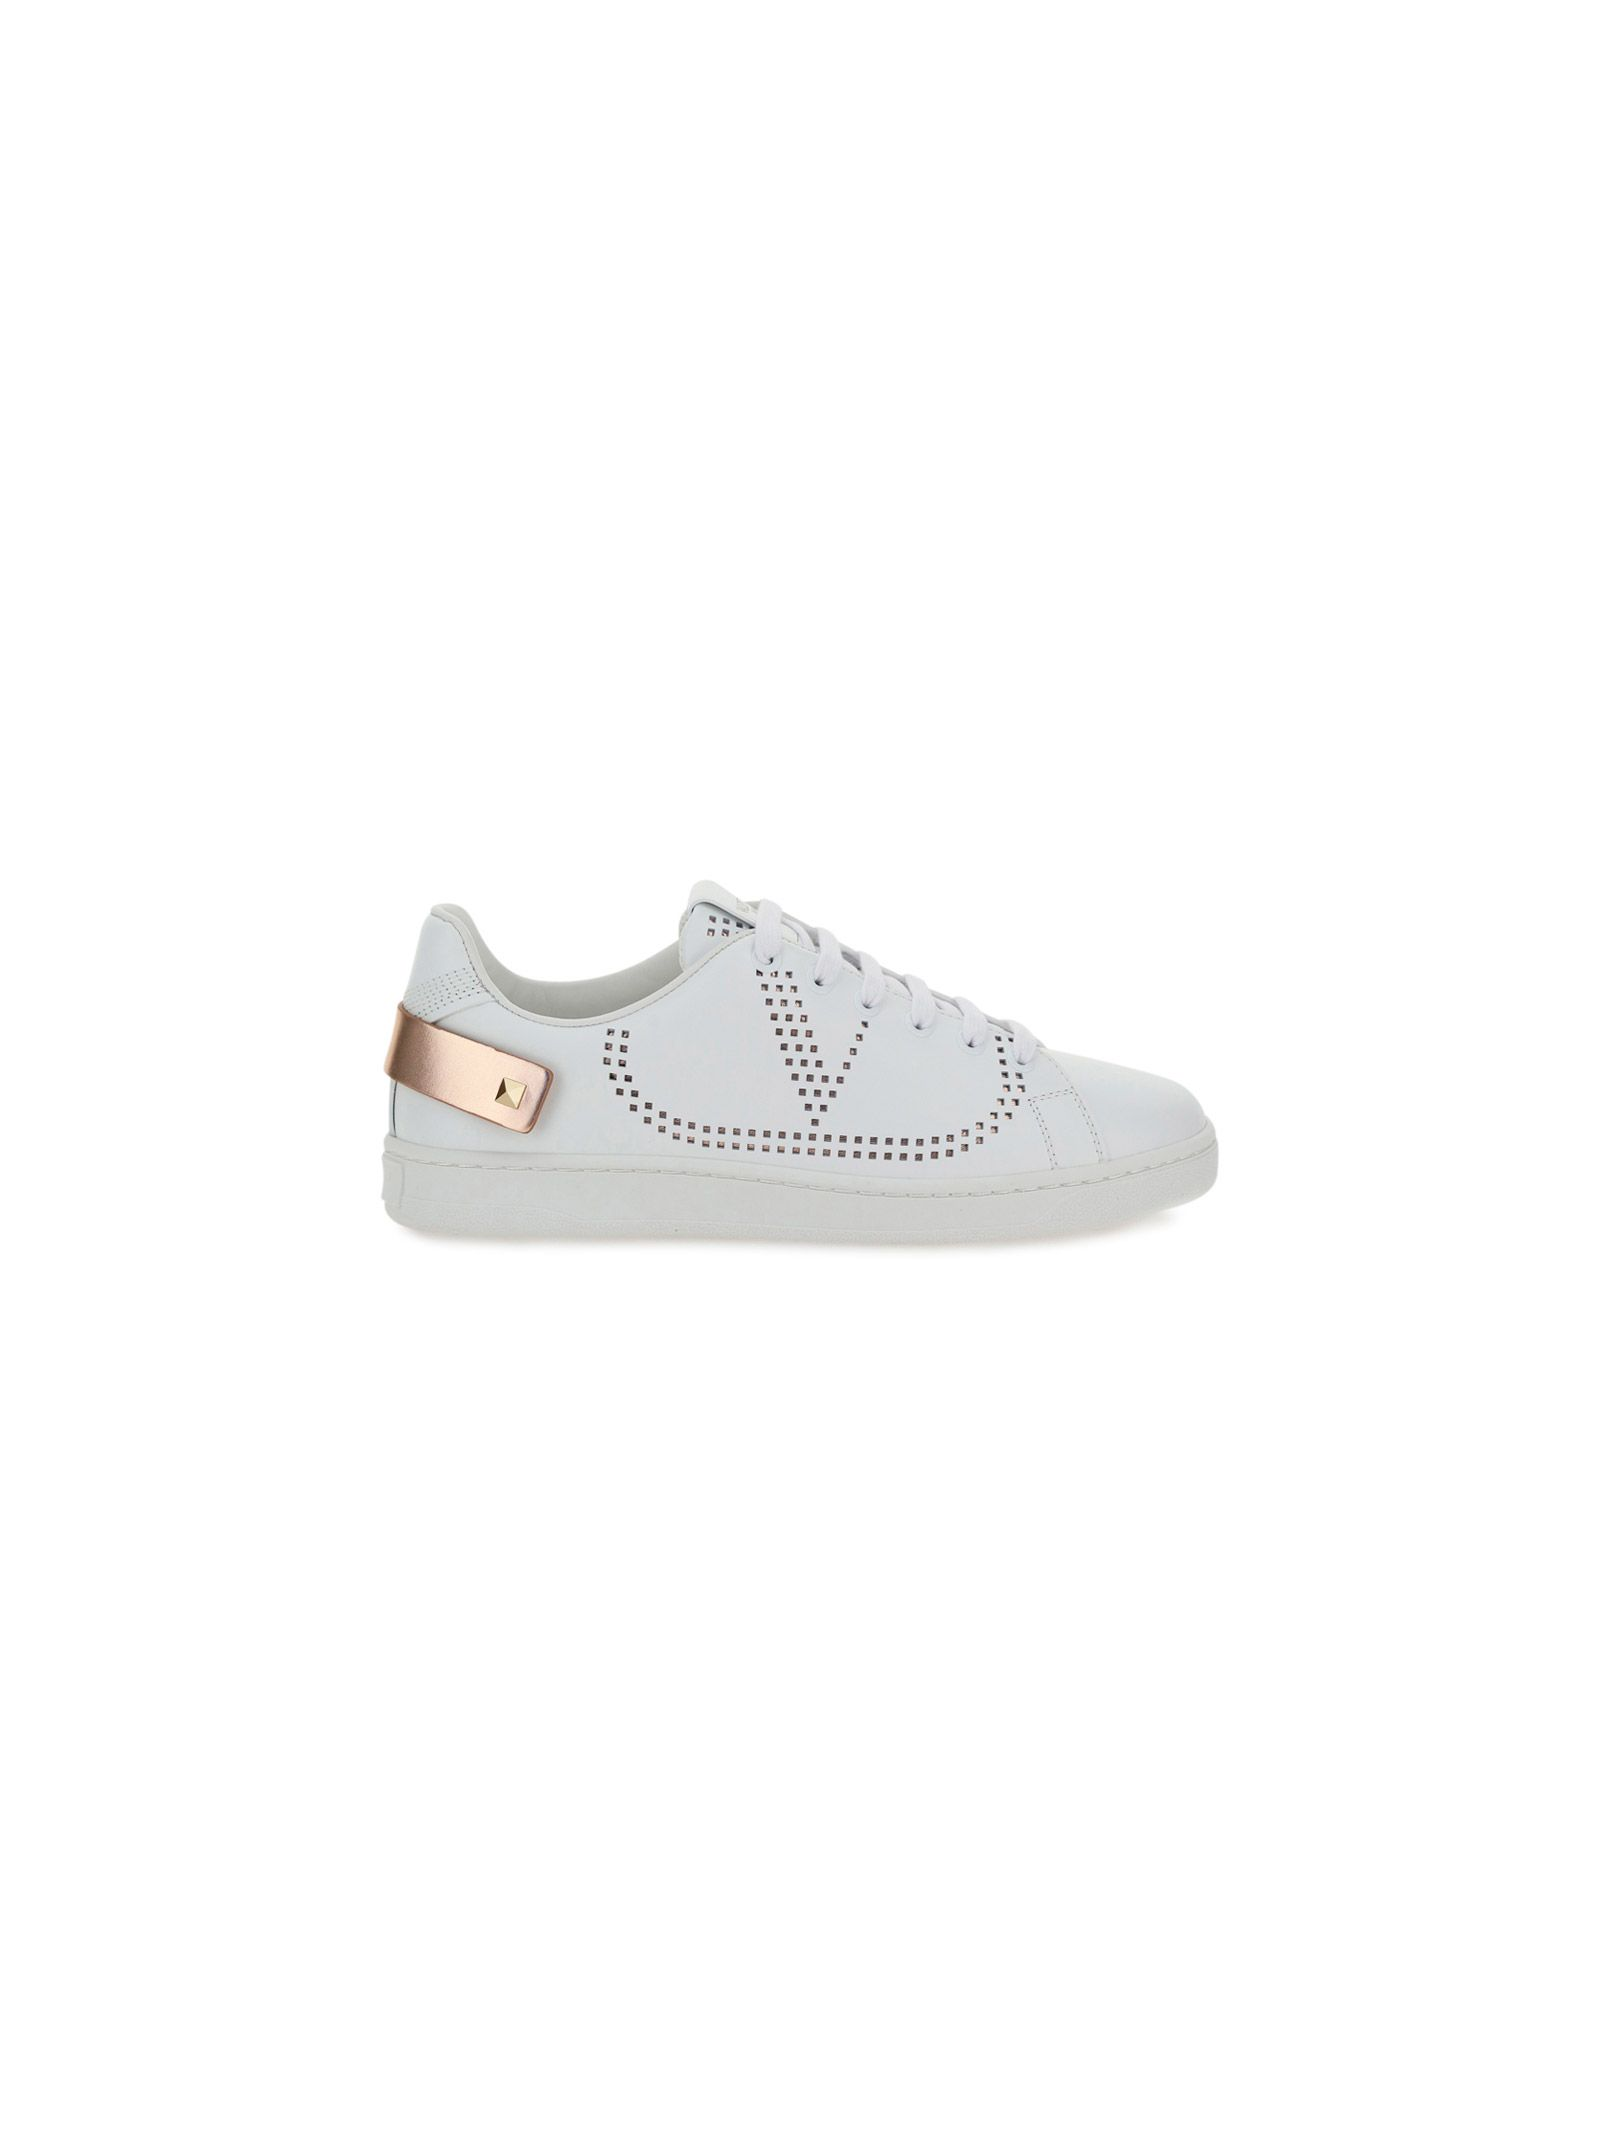 Valentino VALENTINO GARAVANI WOMEN'S VW2S0M20FKZBT8 WHITE OTHER MATERIALS SNEAKERS